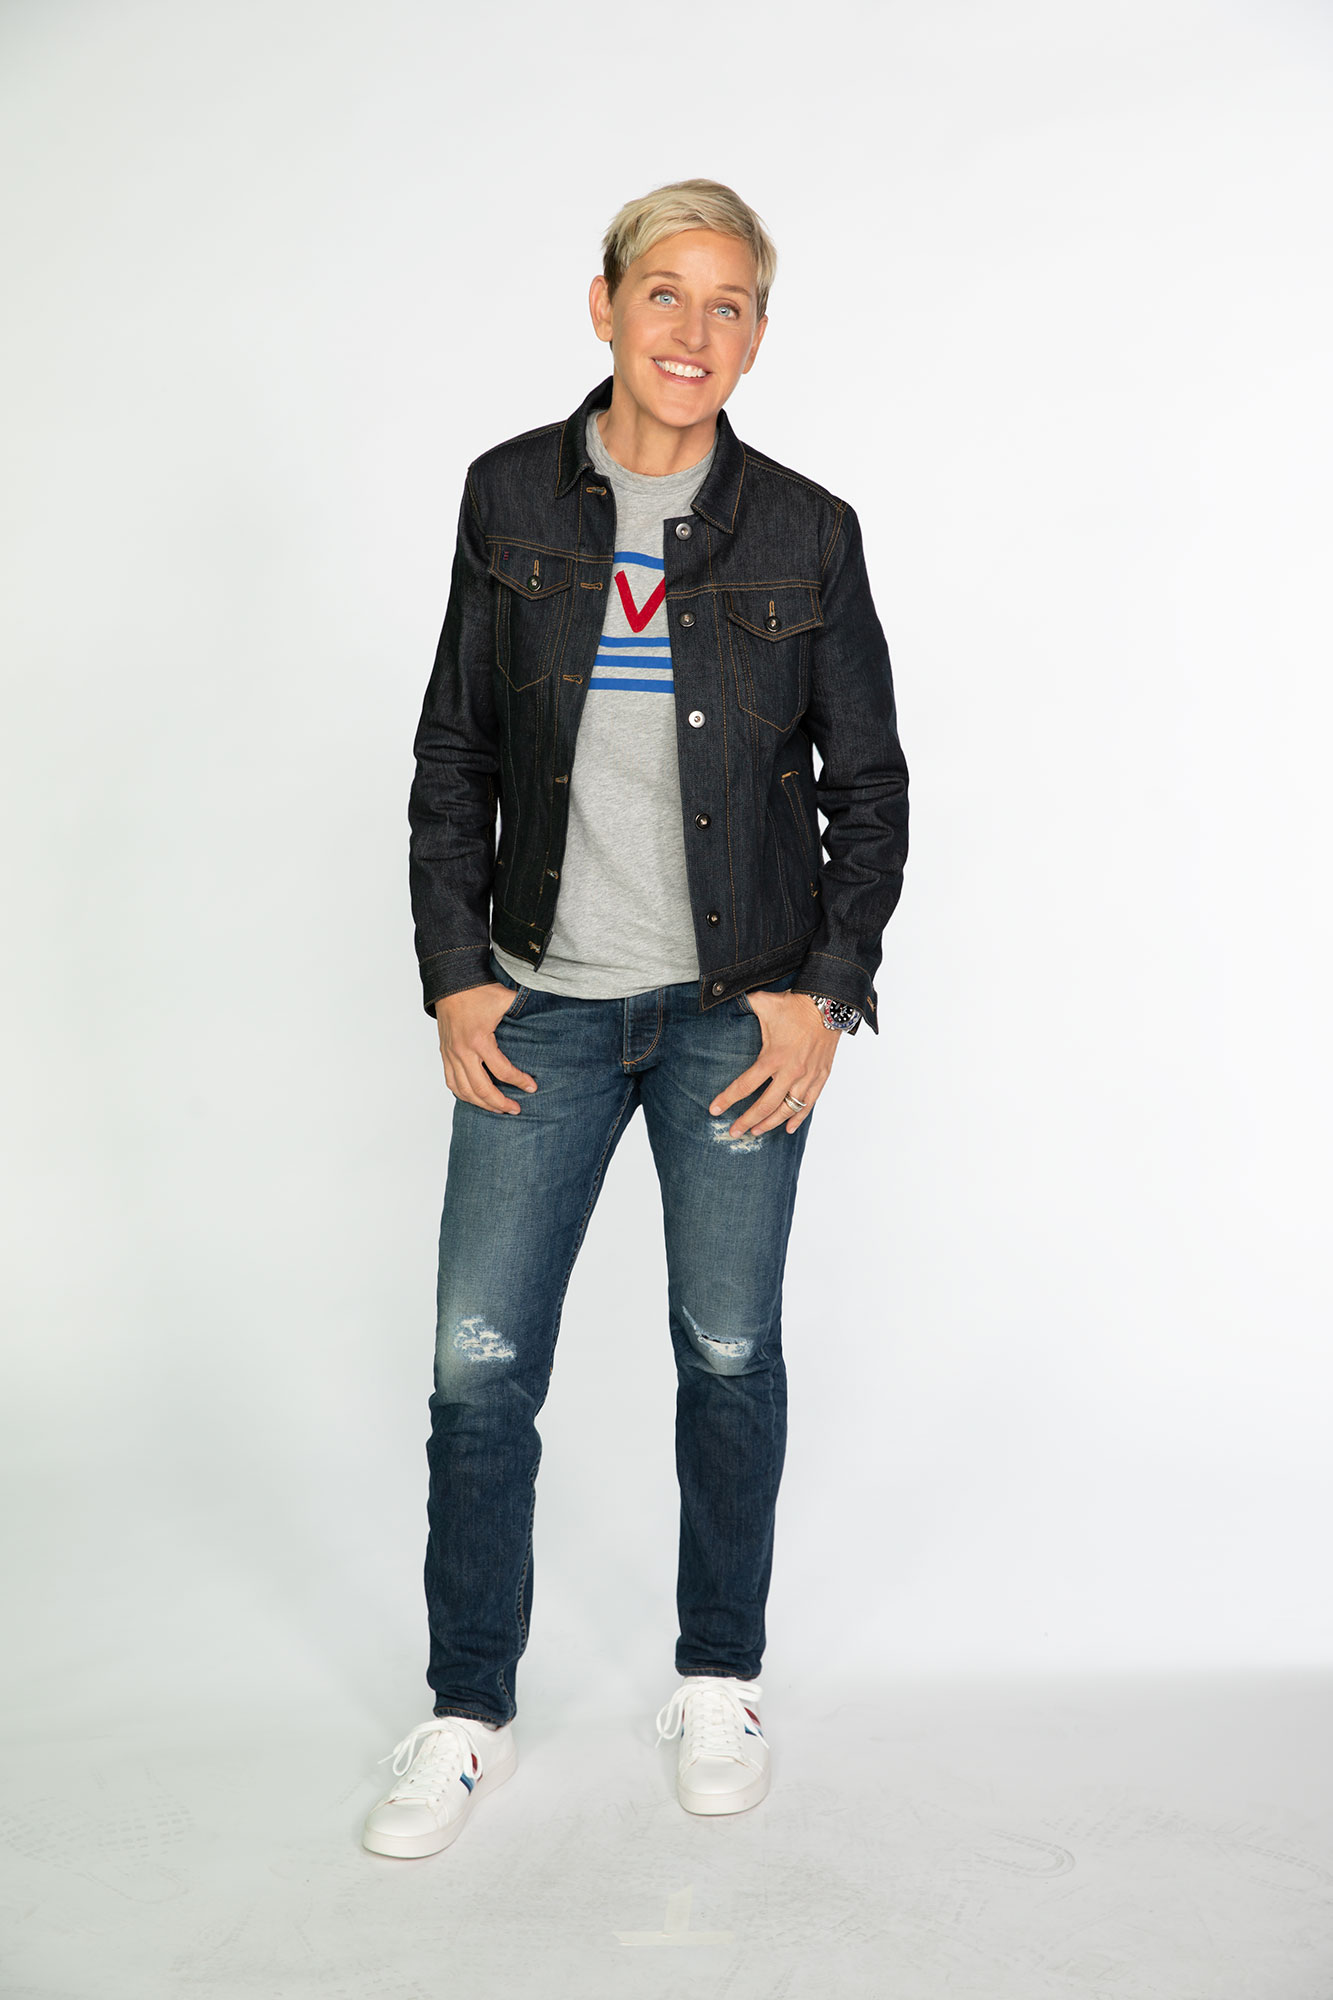 Ellen DeGeneres' New Fashion Line for Walmart Is Here—and It's All Under $30